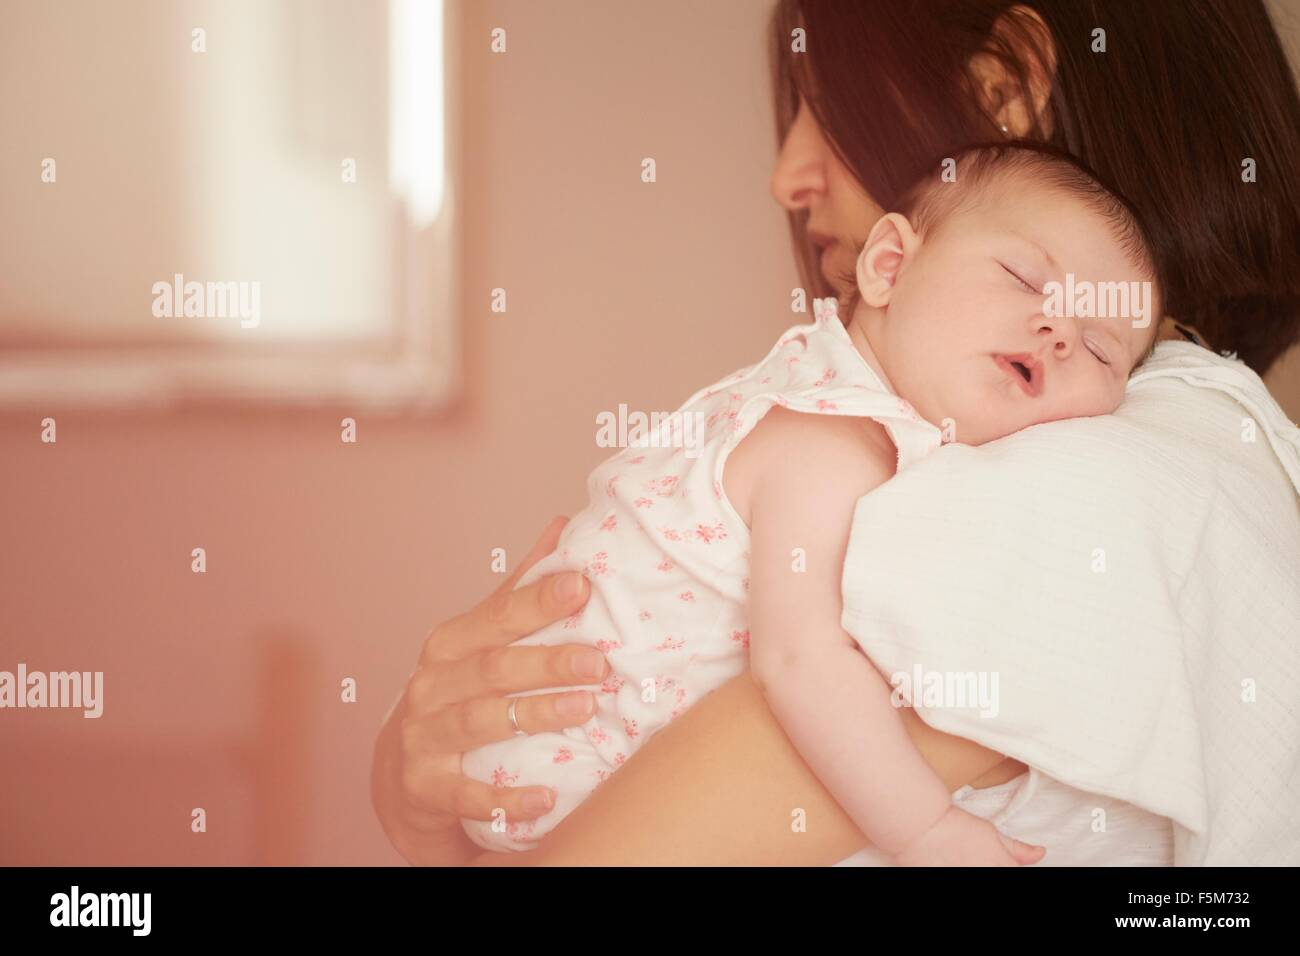 Mother carrying sleeping baby - Stock Image